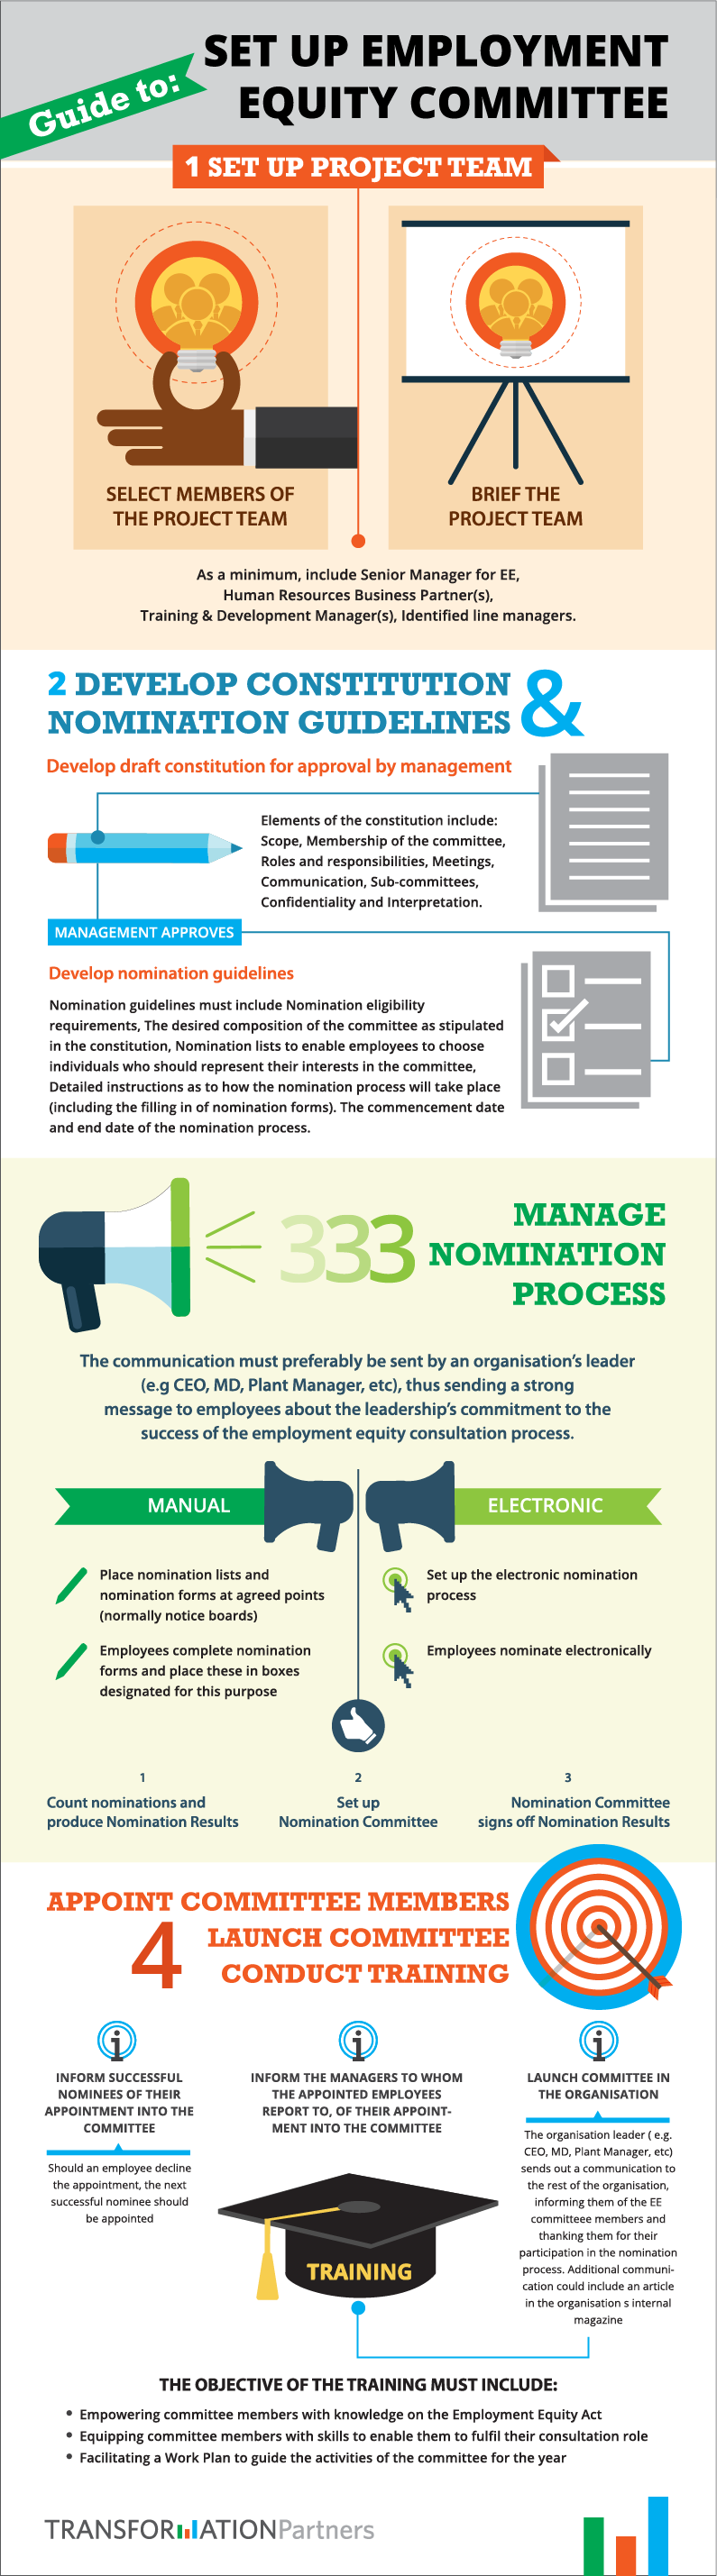 Infographic on how to set up Employment Equity Committee